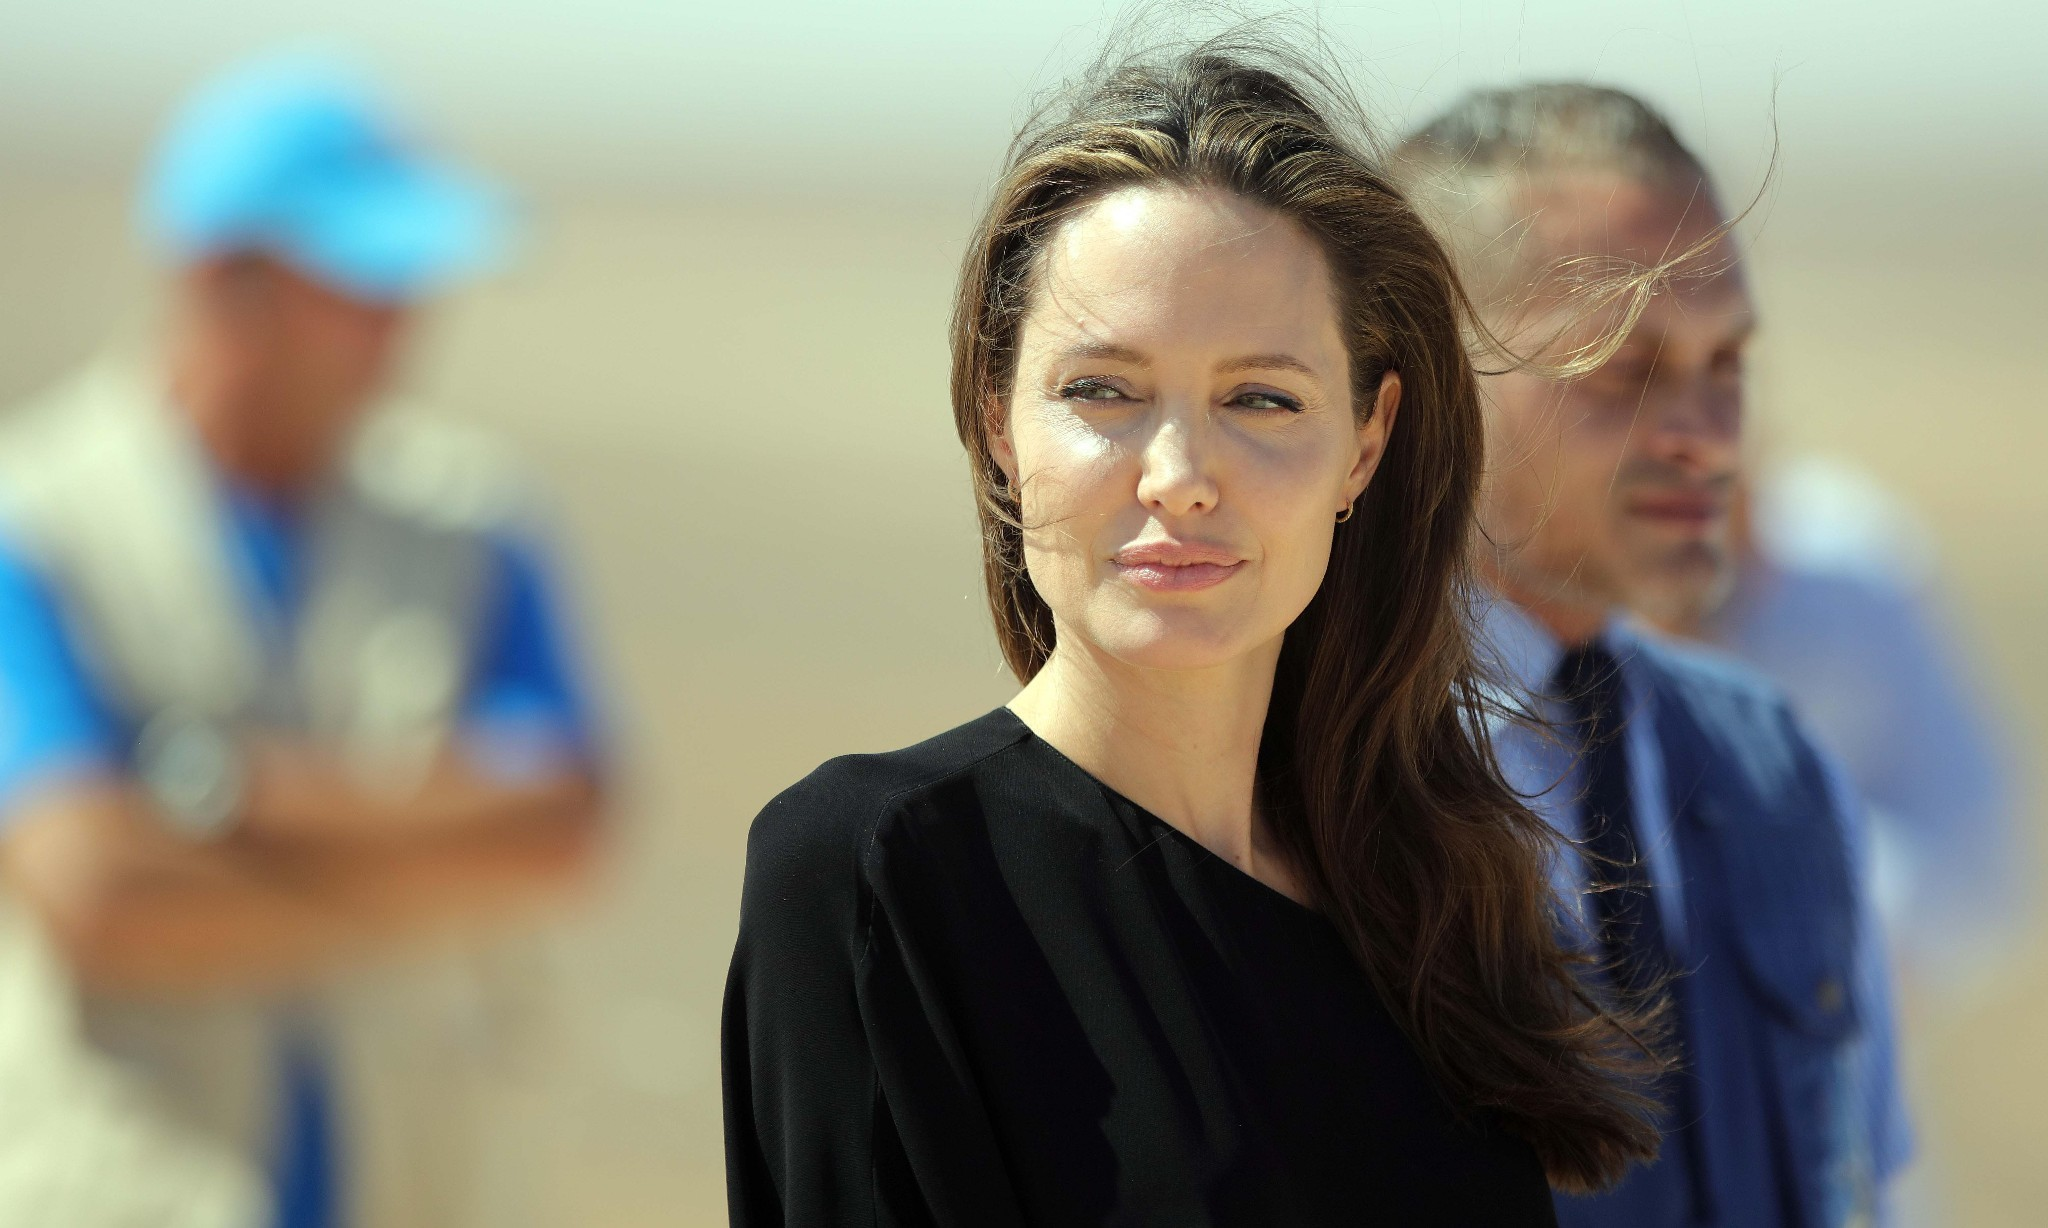 Angelina Jolie on travel ban: 'Response should be based on facts, not fear'